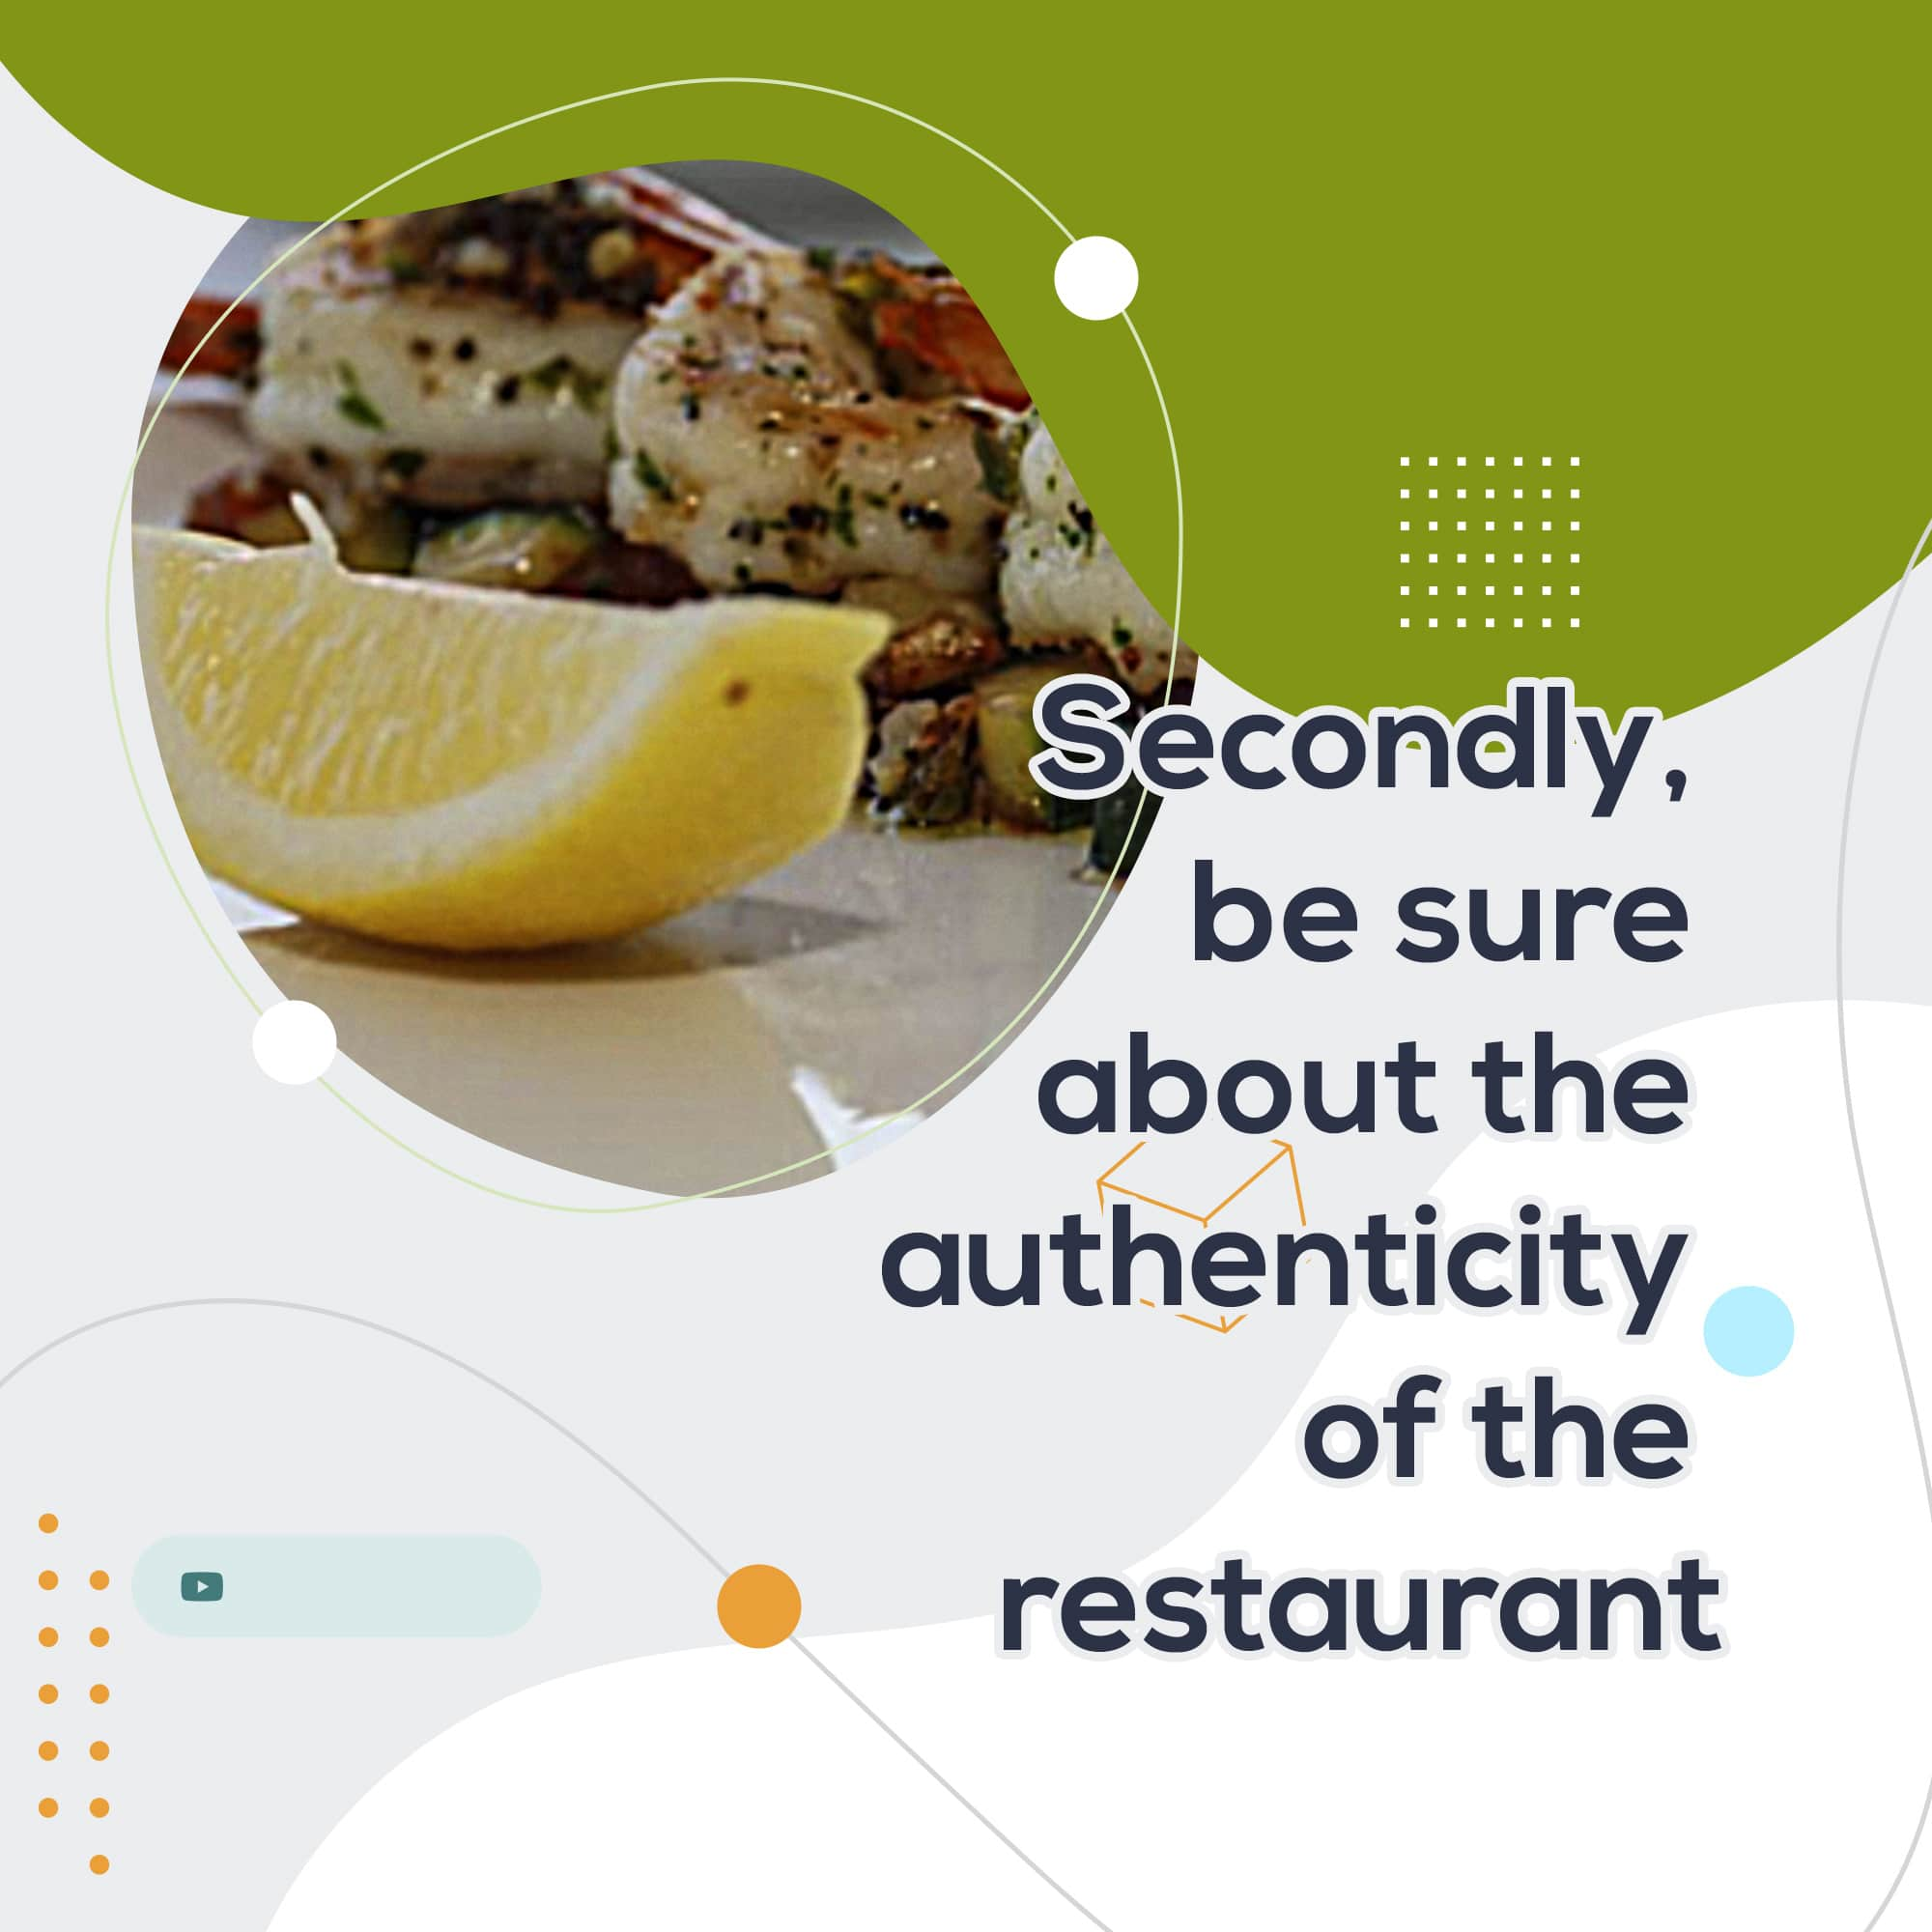 Secondly, be sure about the authenticity of the restaurant